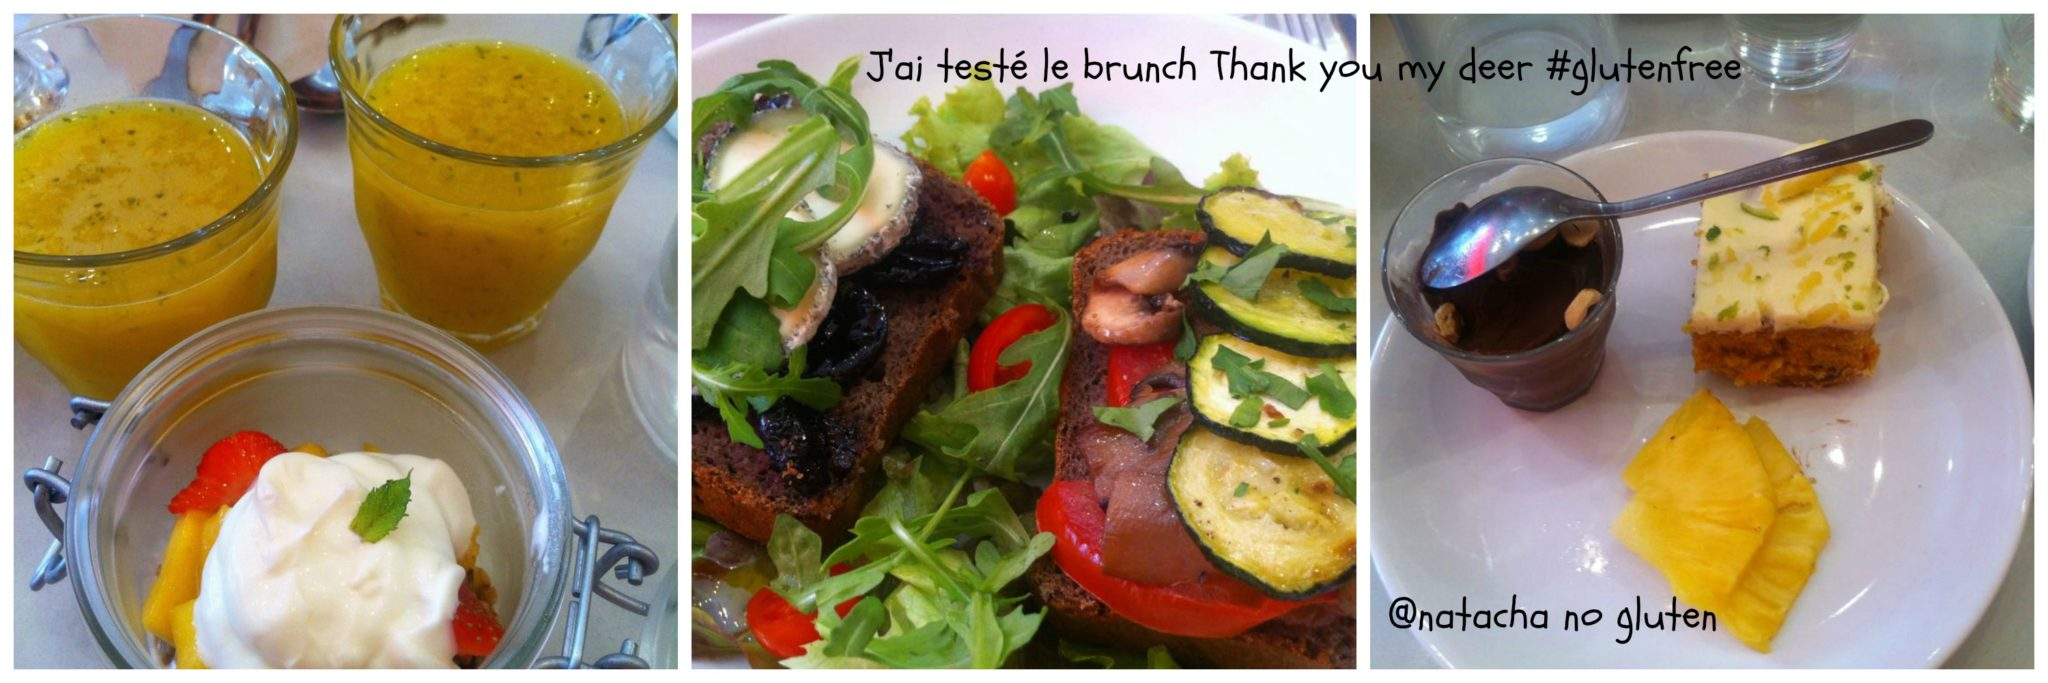 J 39 ai brunch sans gluten thank you my deer ferm ma - Je cuisine sans gluten ...